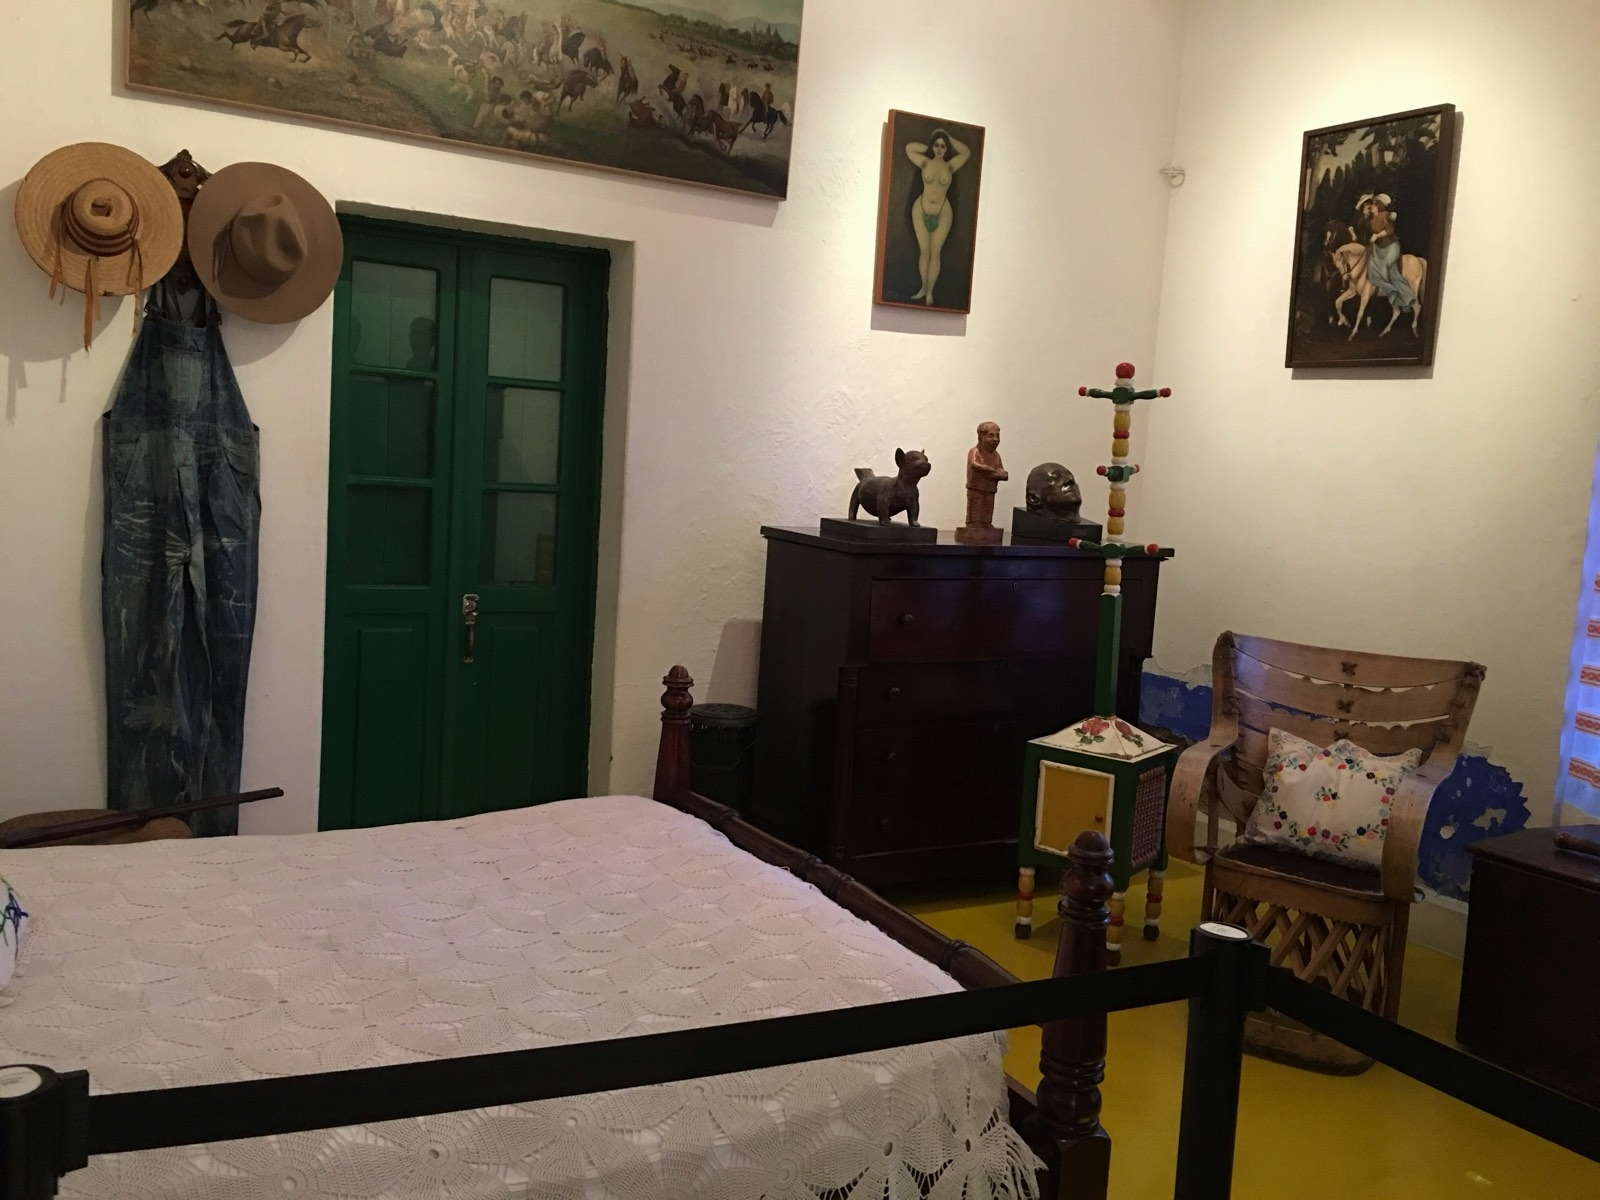 Diego had a room downstairs. Those are his overalls and hats on the wall.